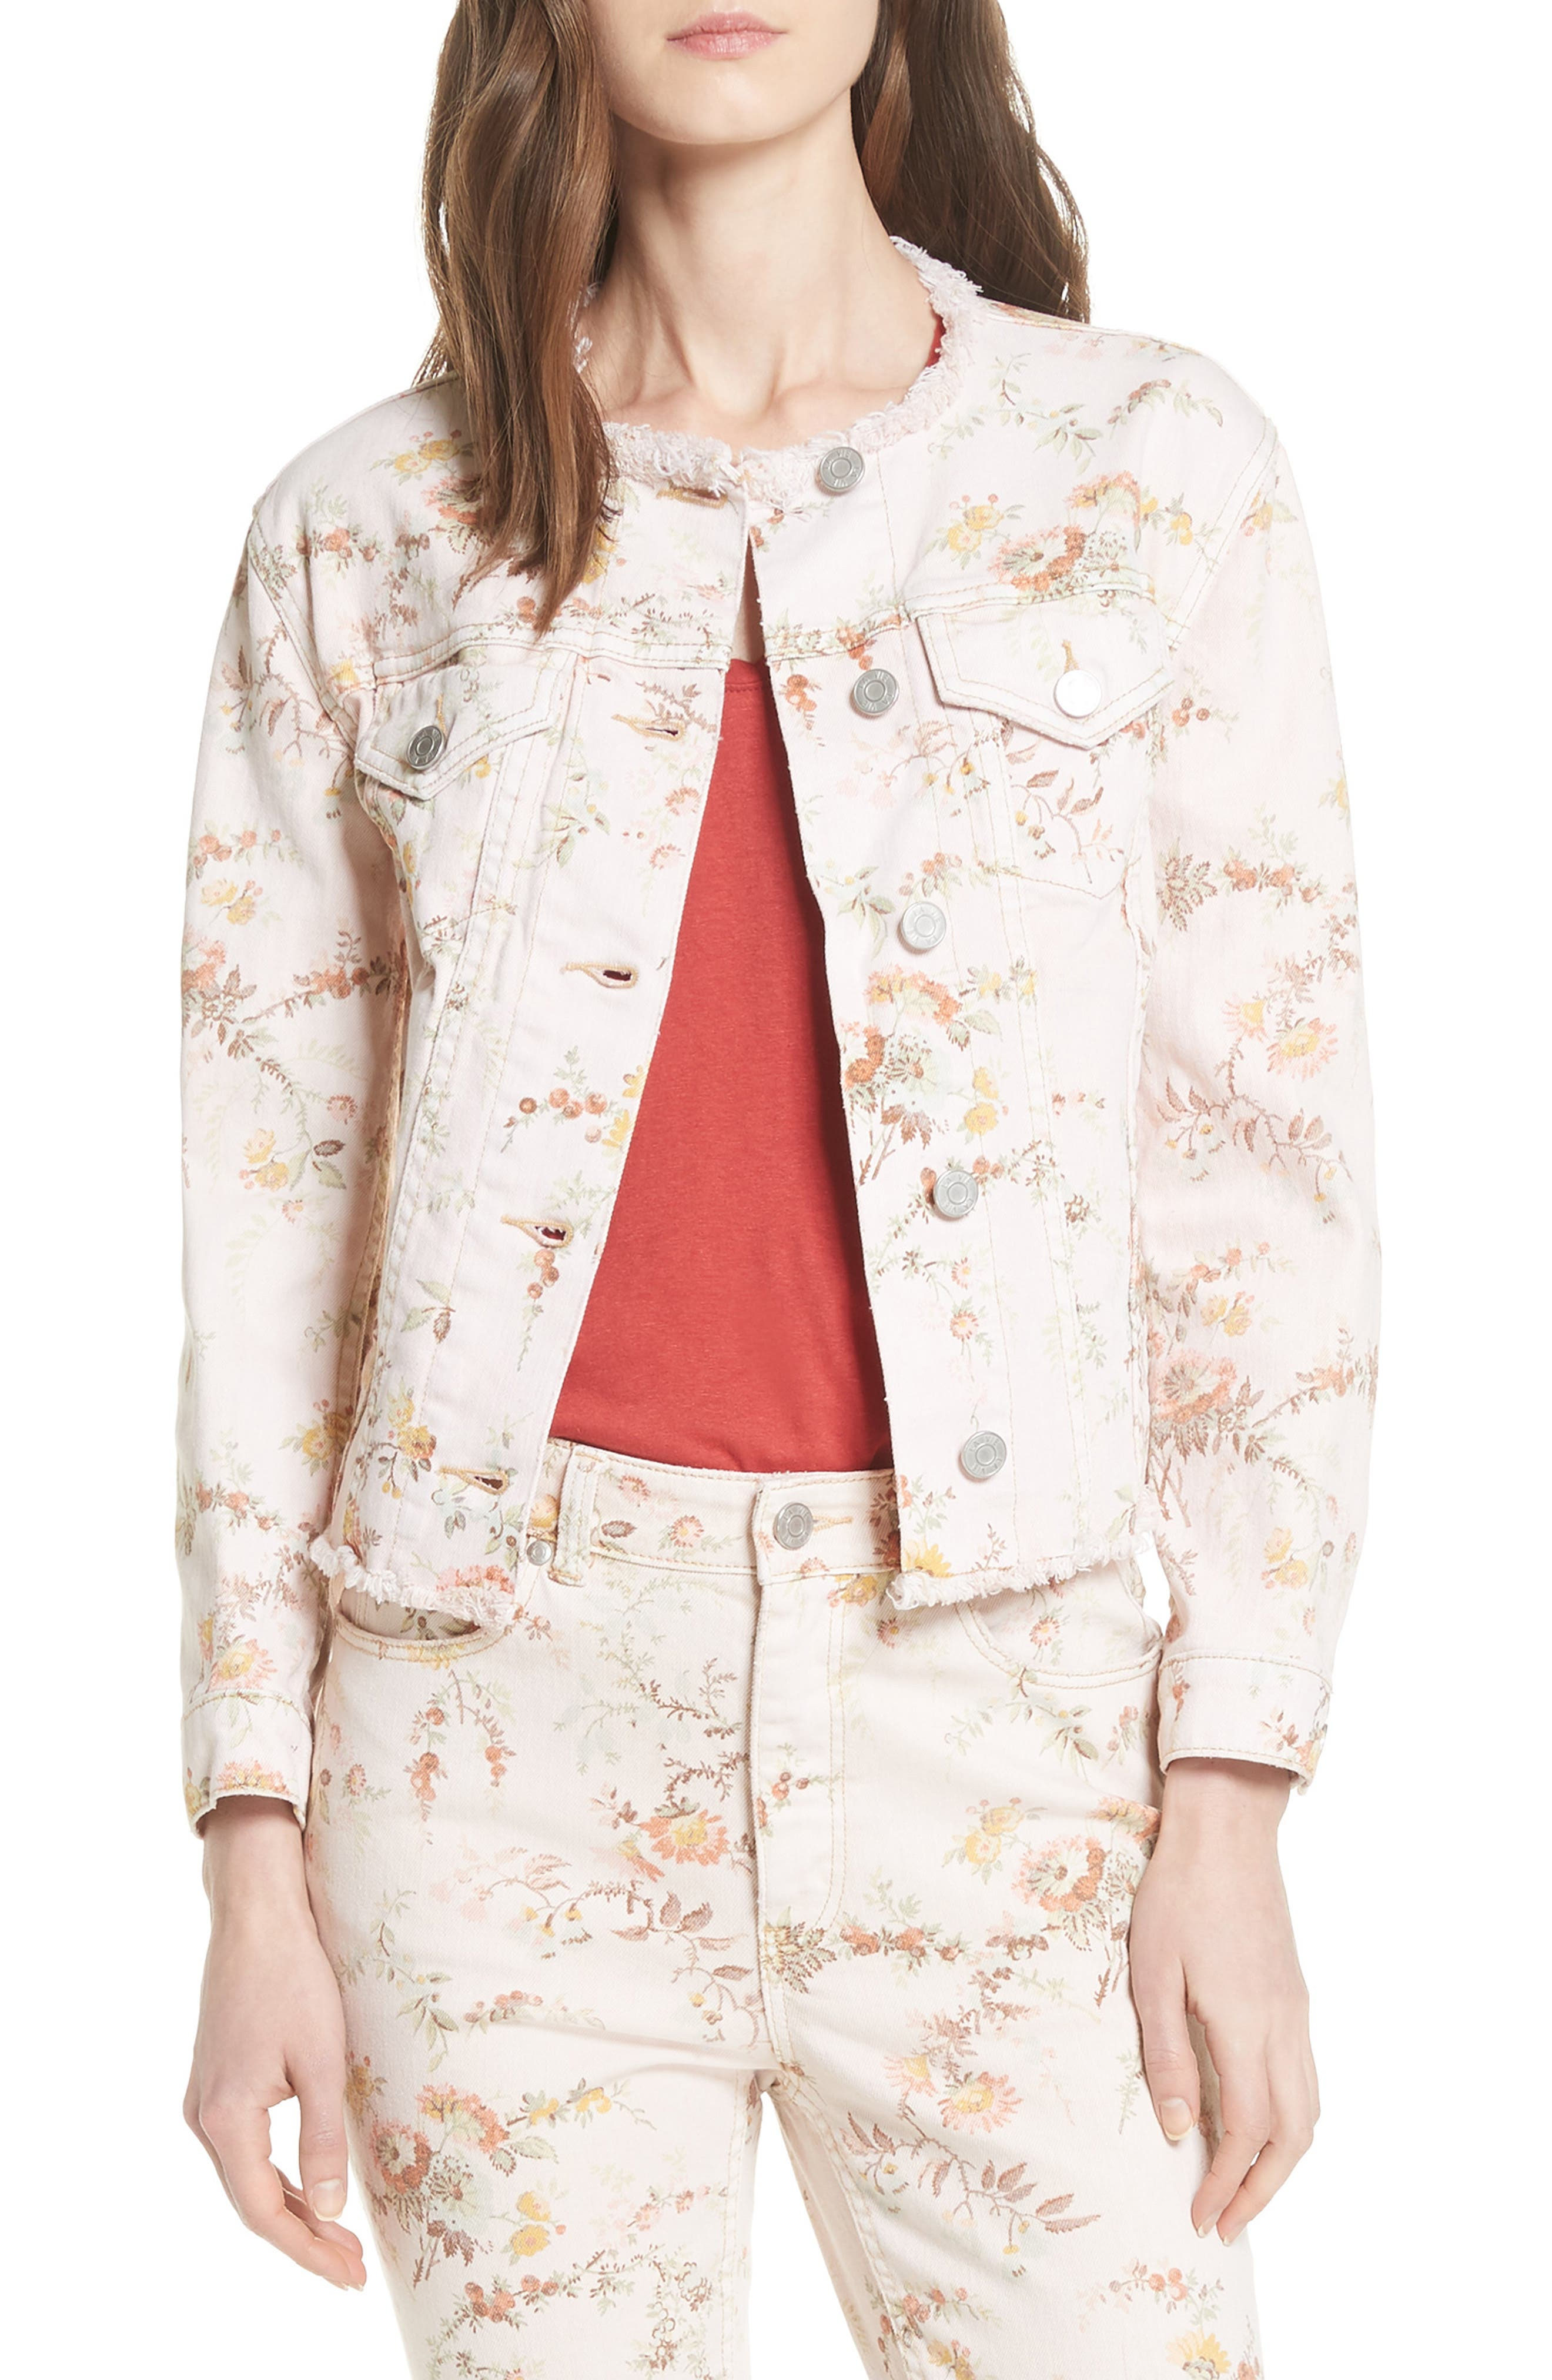 La Vie Rebecca Taylor Belle Denim Jacket